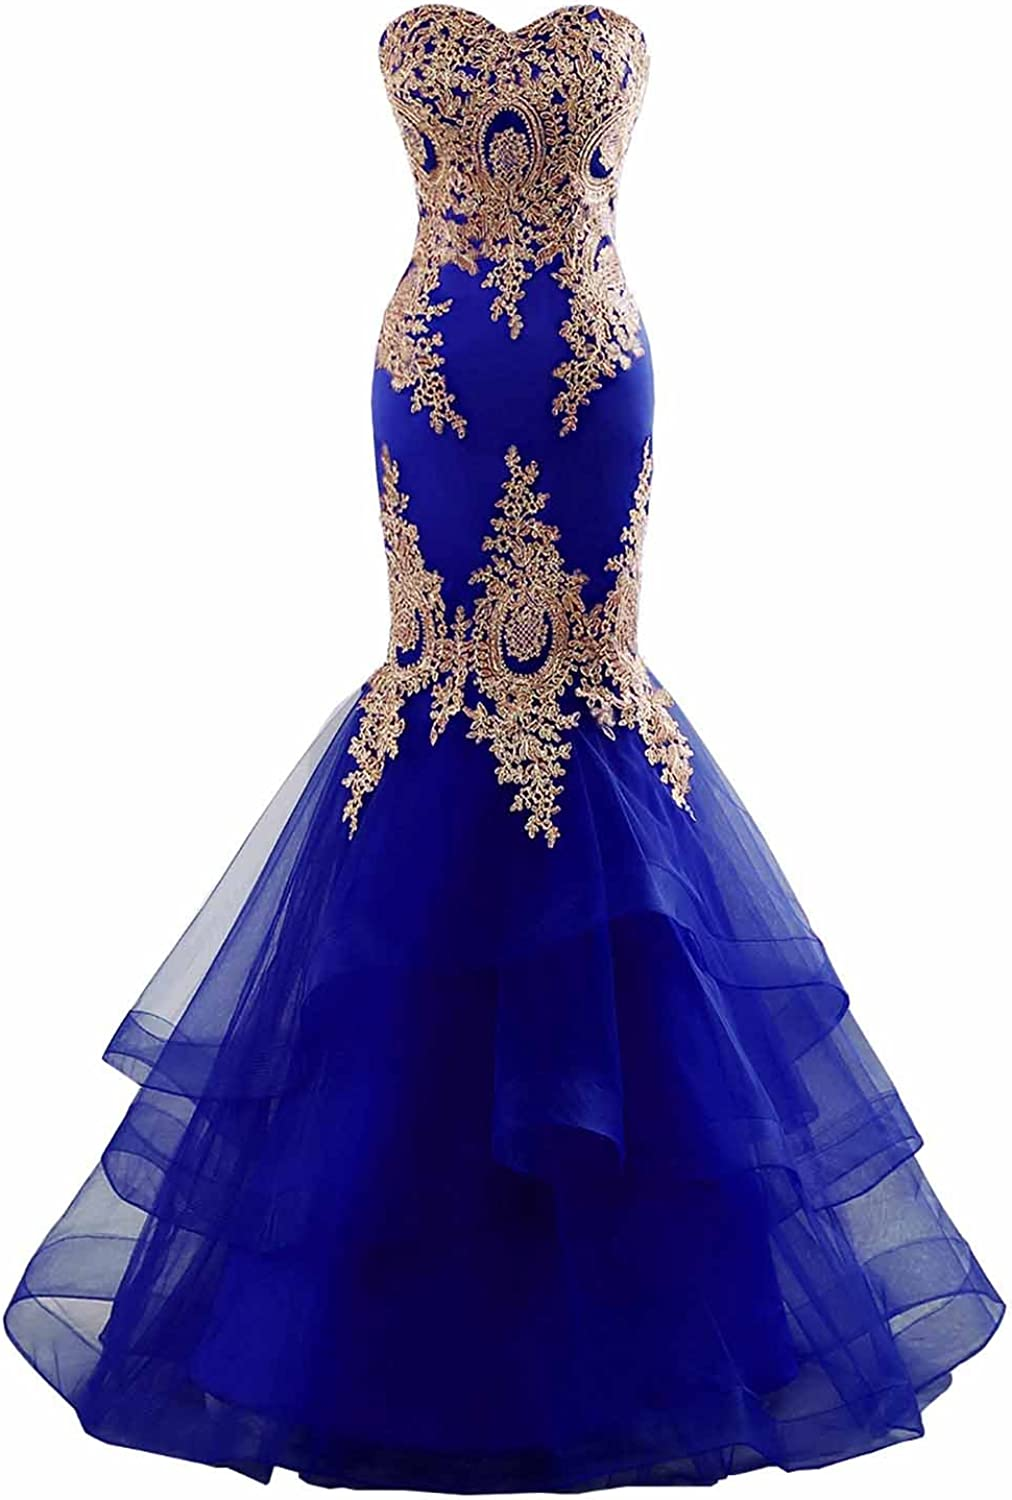 Changuan Elegant Mermaid Evening Formal Dresses Long Lace Appliques Backless Prom Party Gown for Women